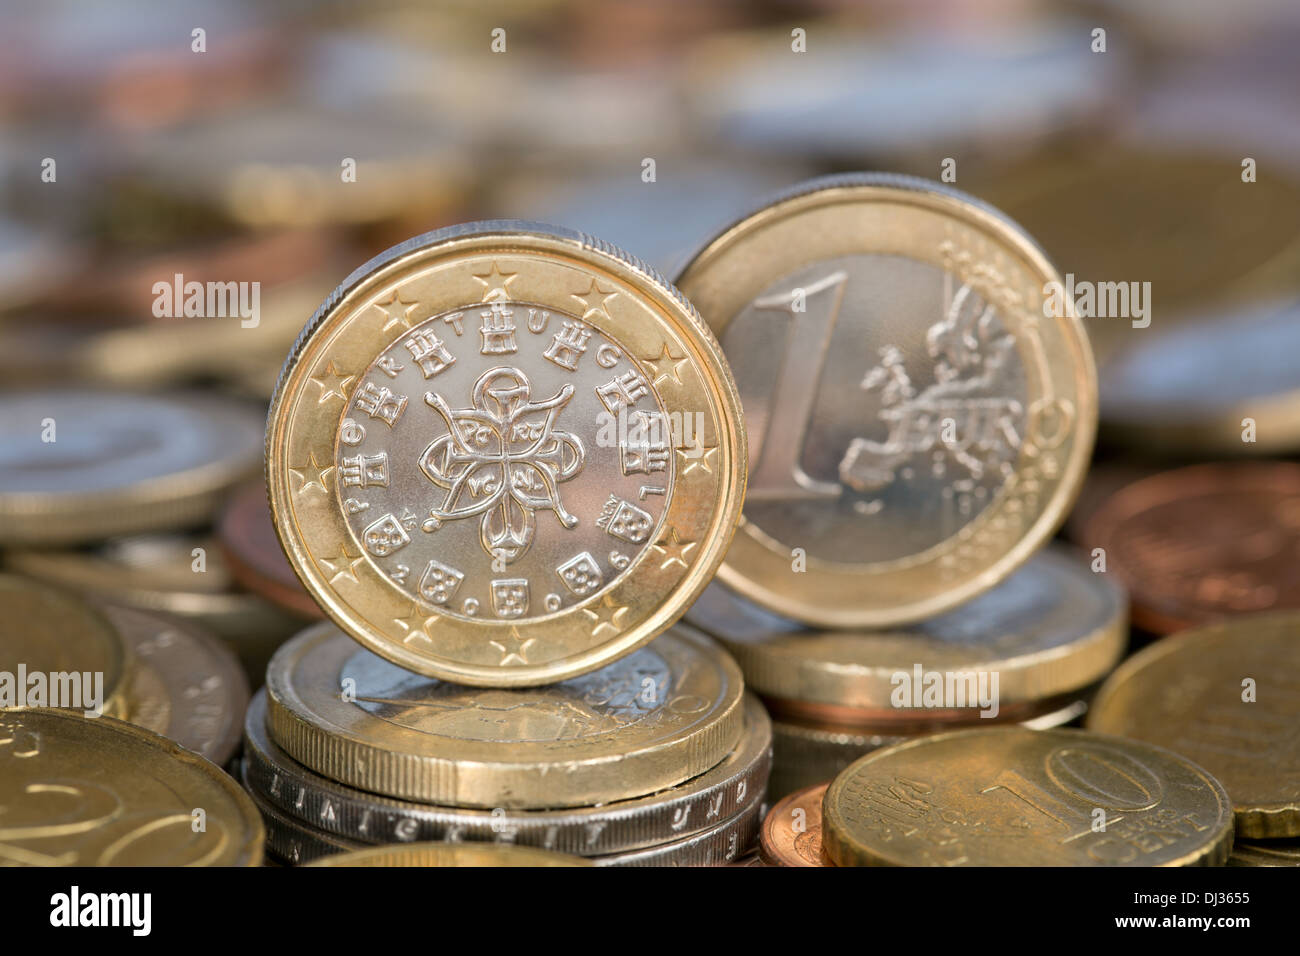 A one Euro coin from the EU member country Portugal - Stock Image